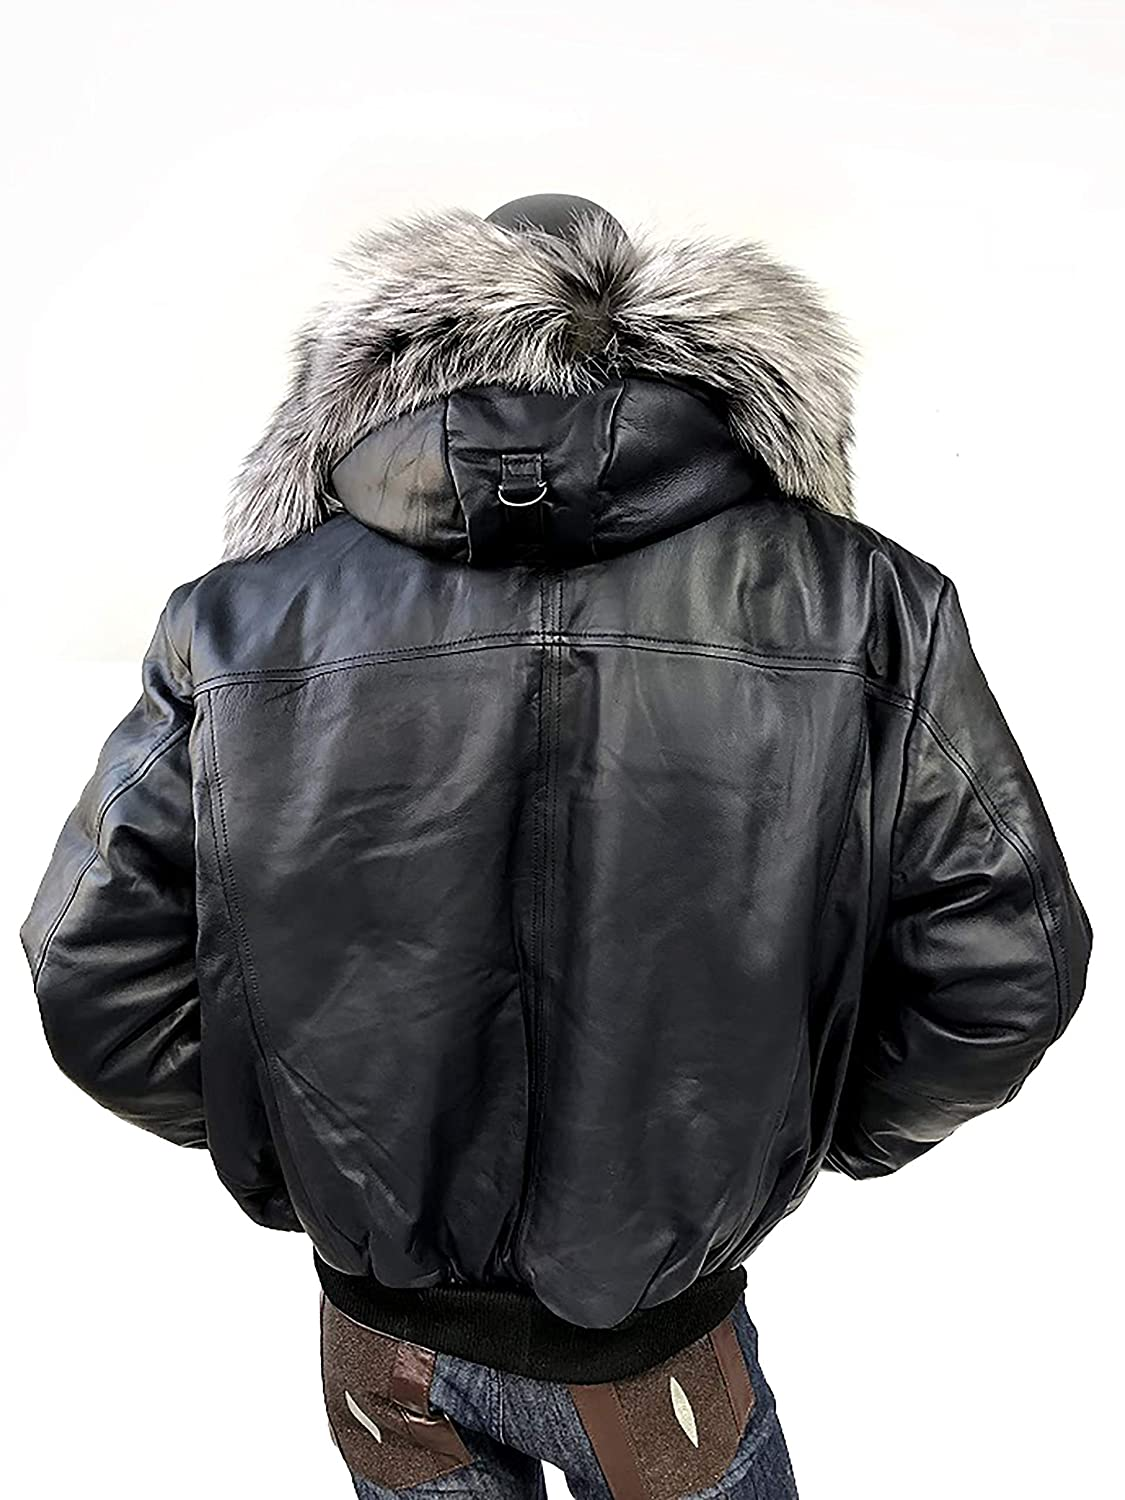 d1165e568 Men's Winter Warm Genuine Leather Bomber Jacket with Real Fur Hood Brown  Navy Black